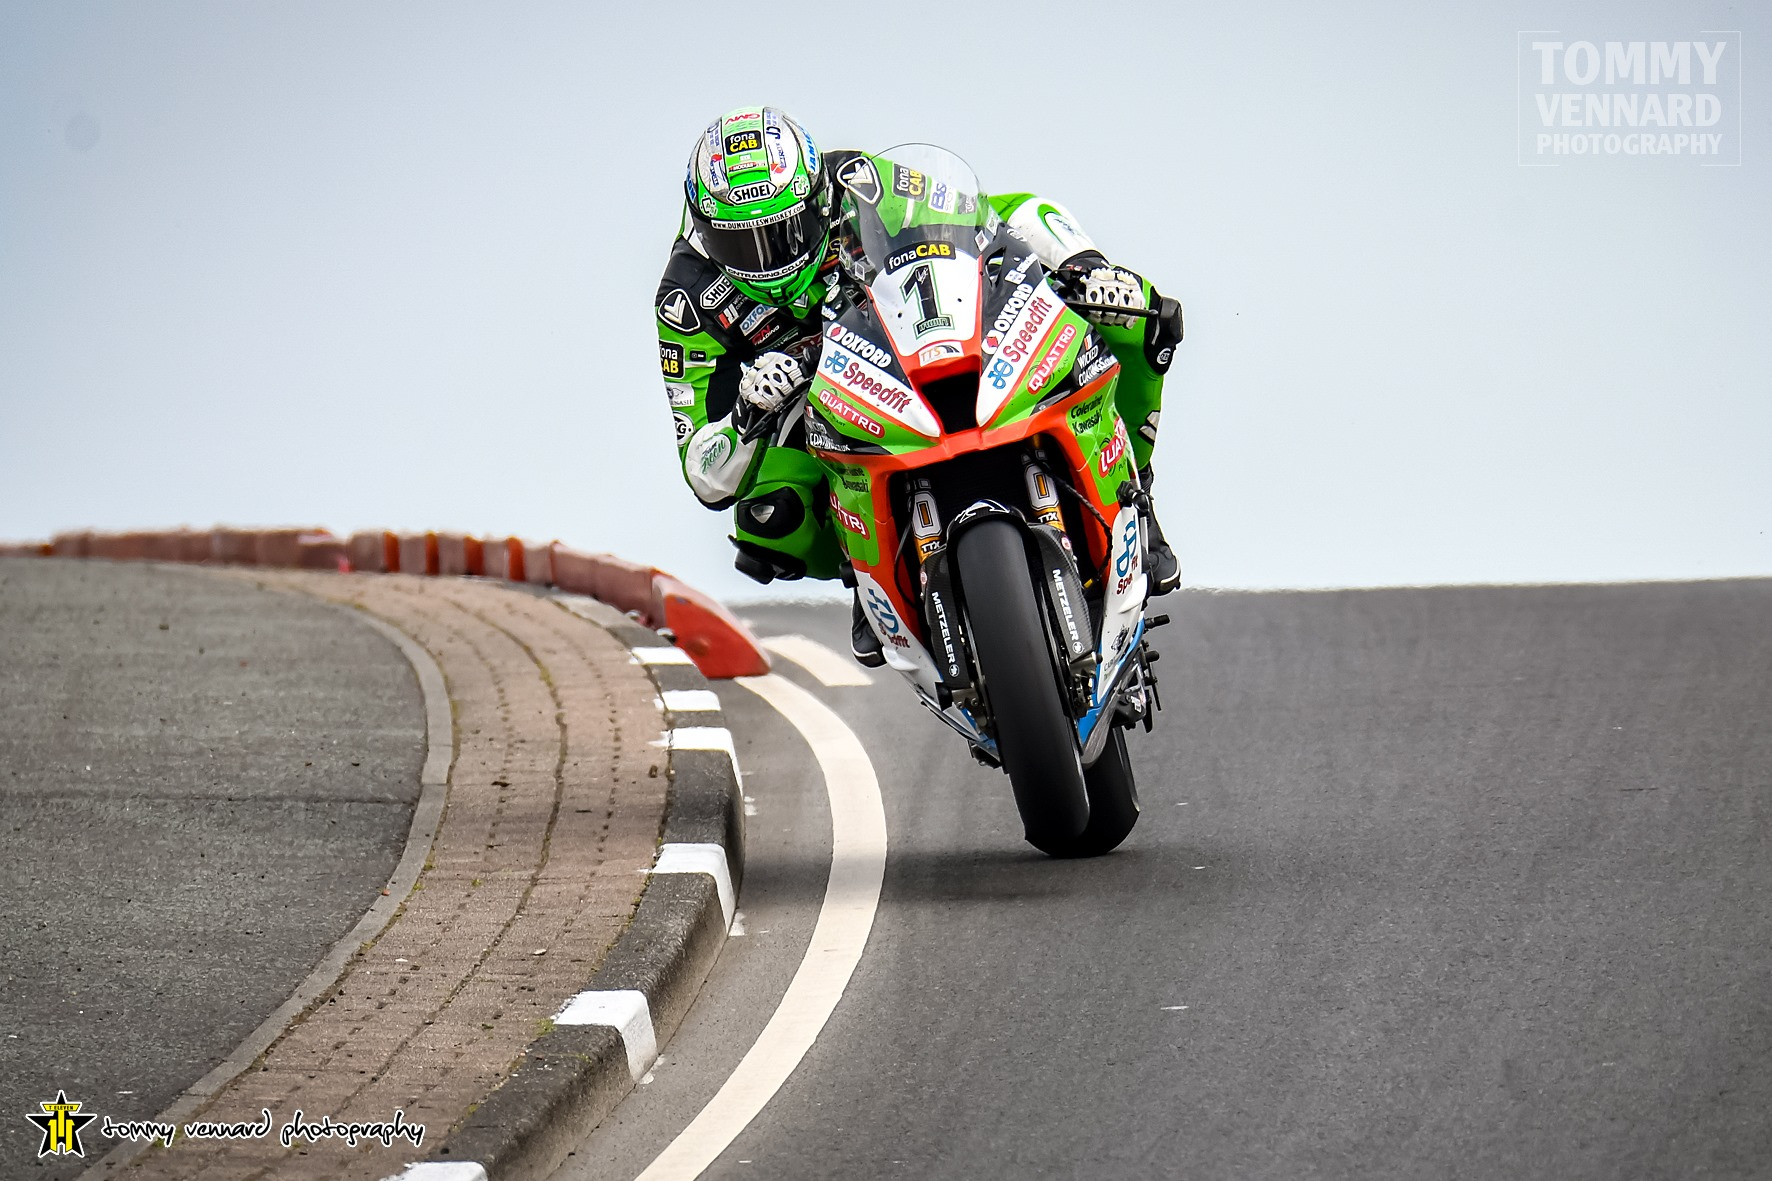 NW200 Action For 2020 Officially Abandoned